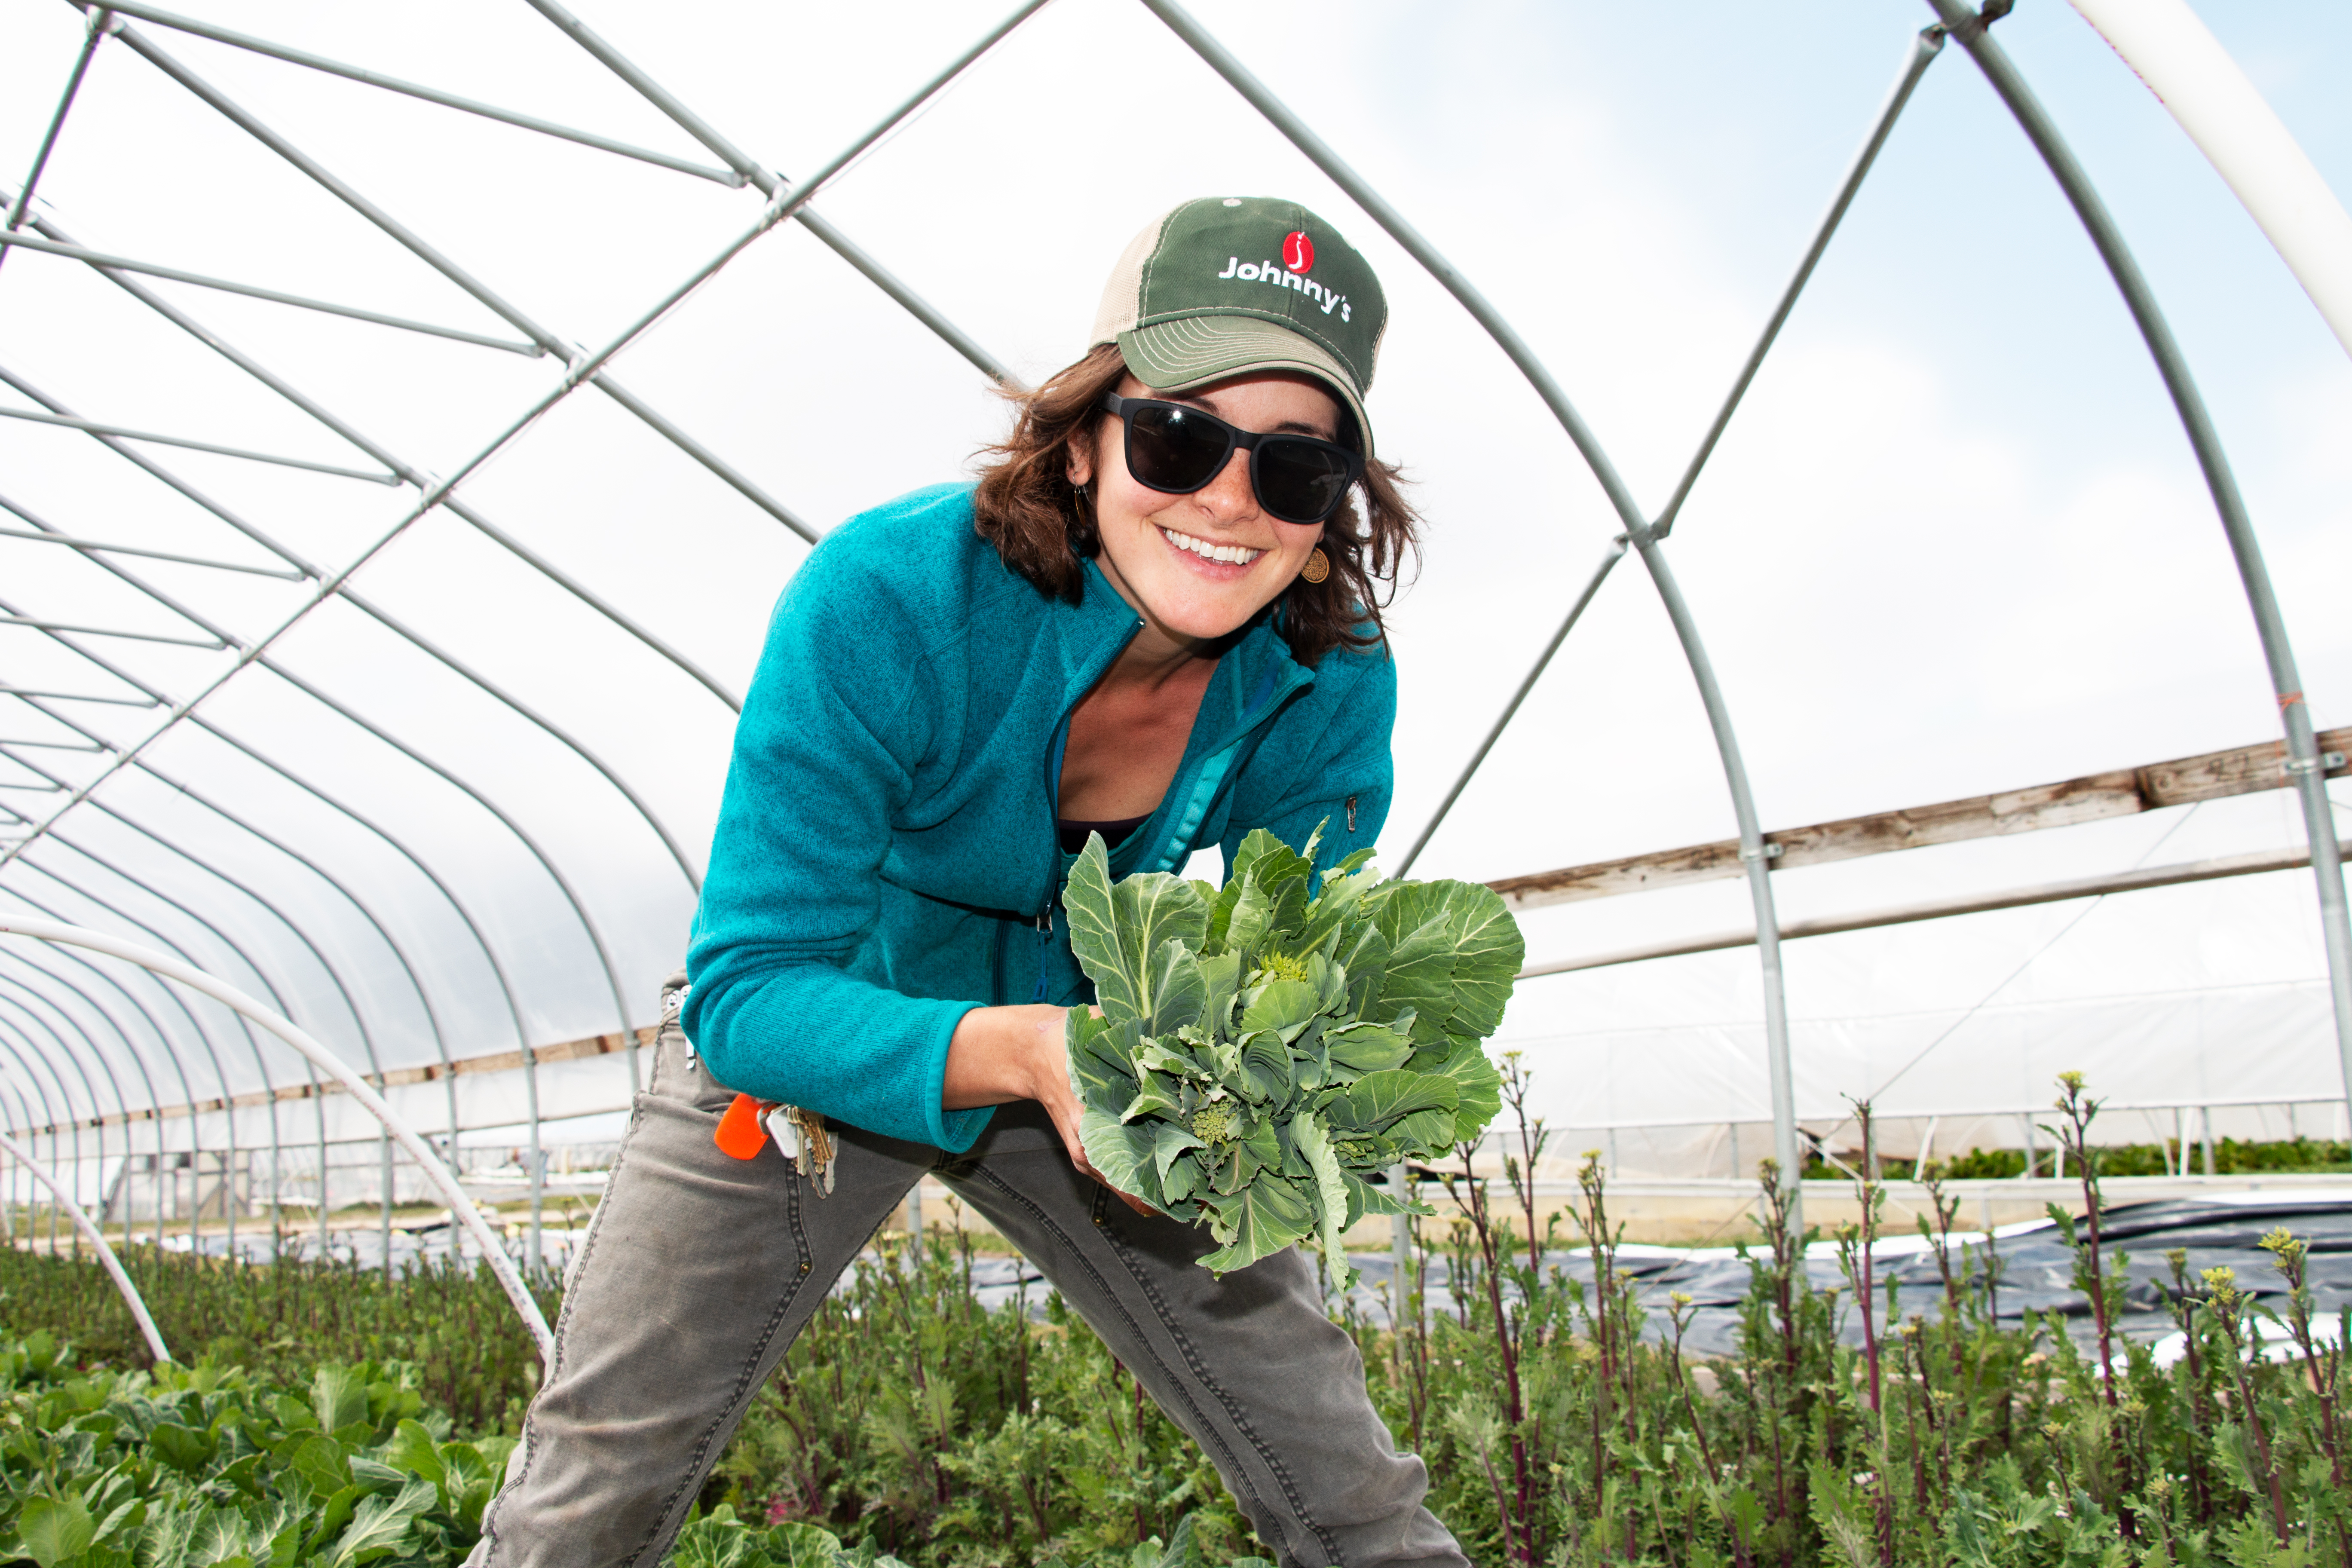 Image of Farm Production Manager, Sarah G. picking vegetables in a greenhouse.